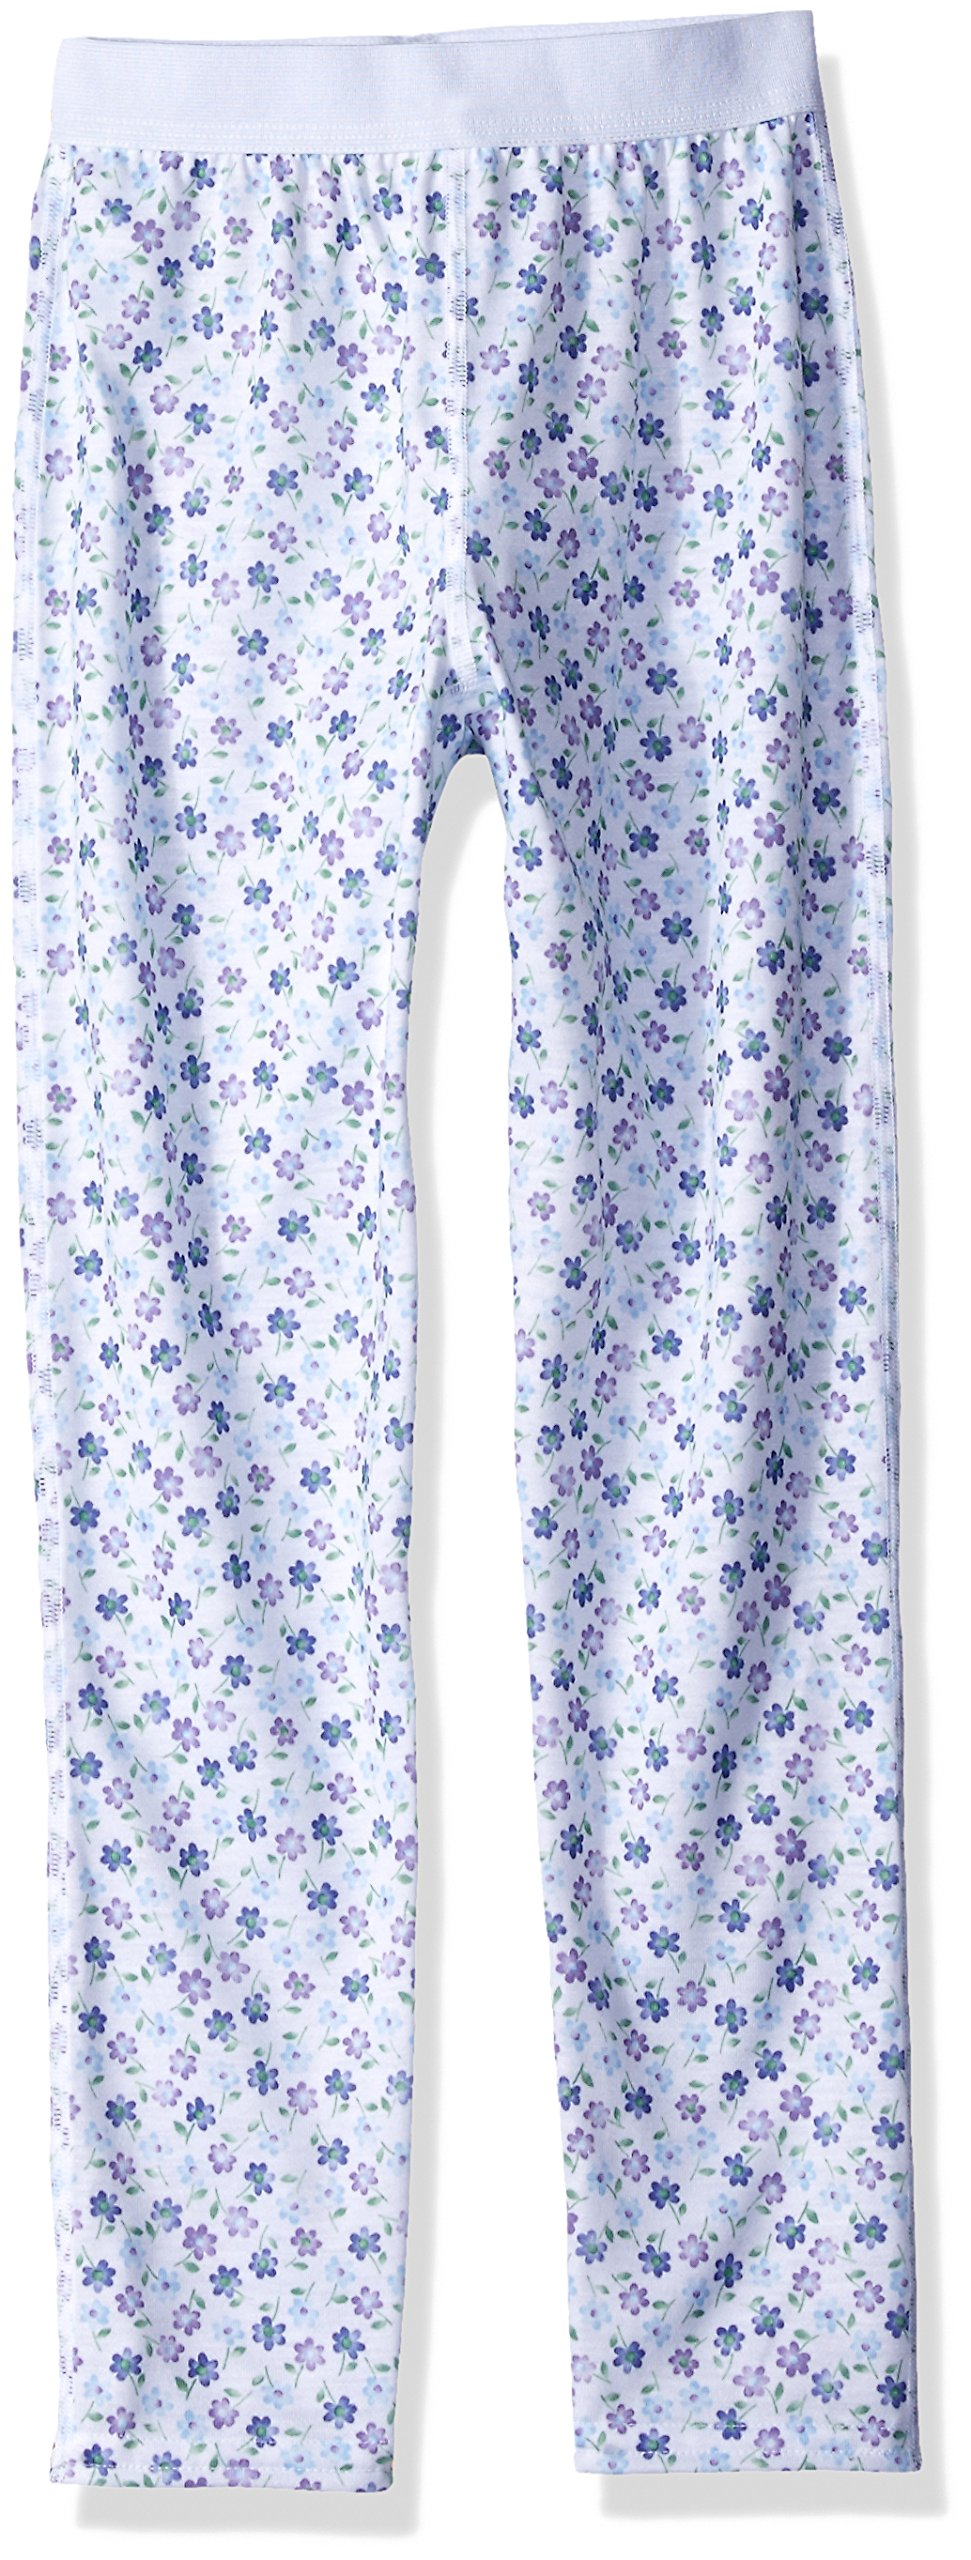 Hot Chillys Youth Pepper Skins Bottom, Daisy, Medium by Hot Chillys